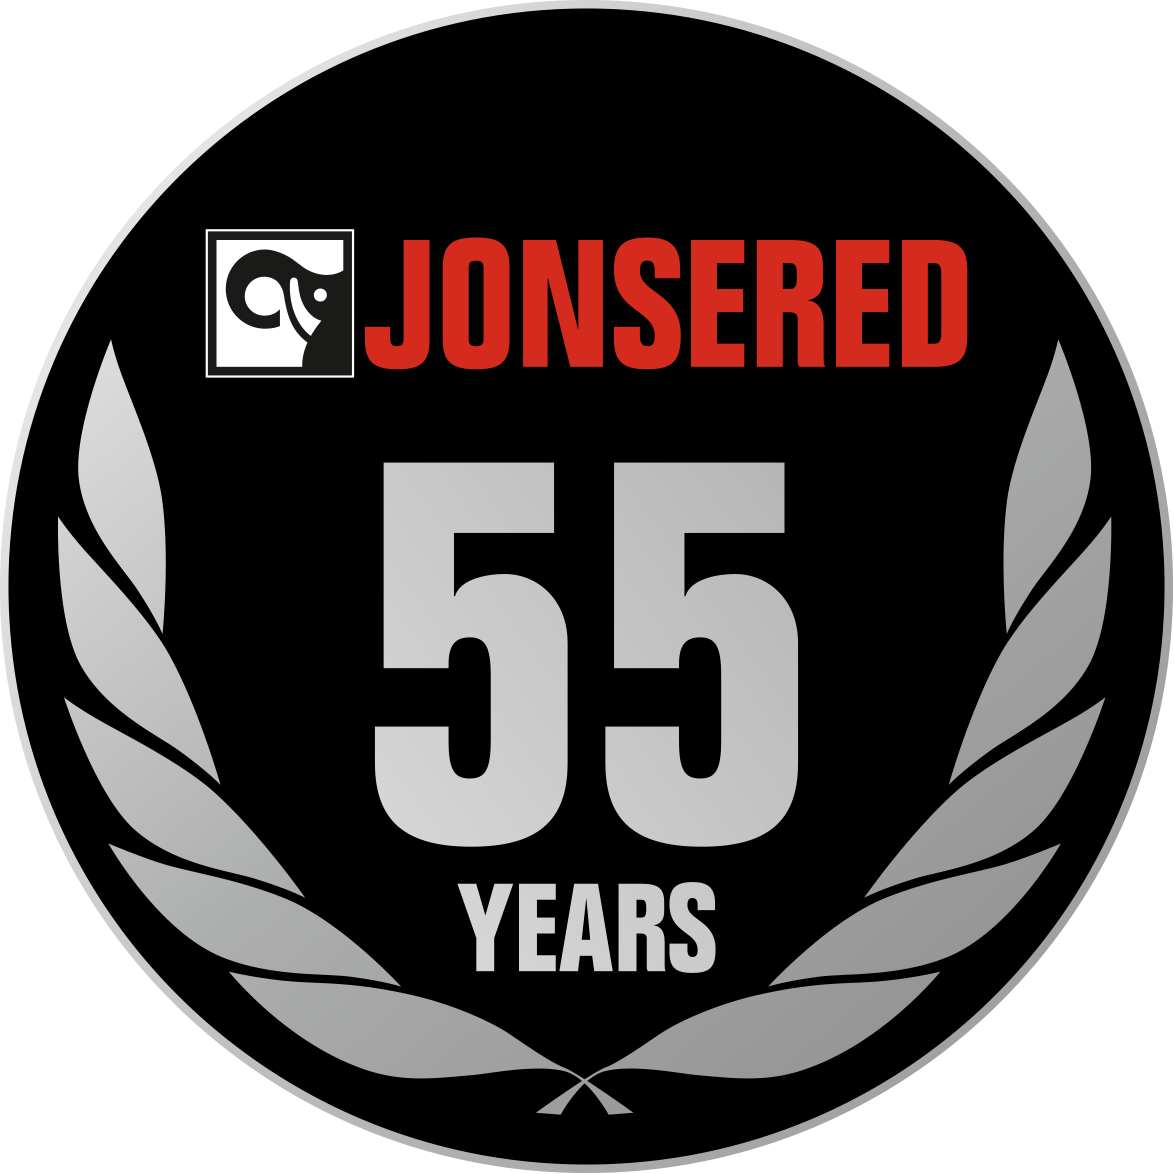 JONSERED_55YEARS_symbol_RGB_OUTLINE_BIG